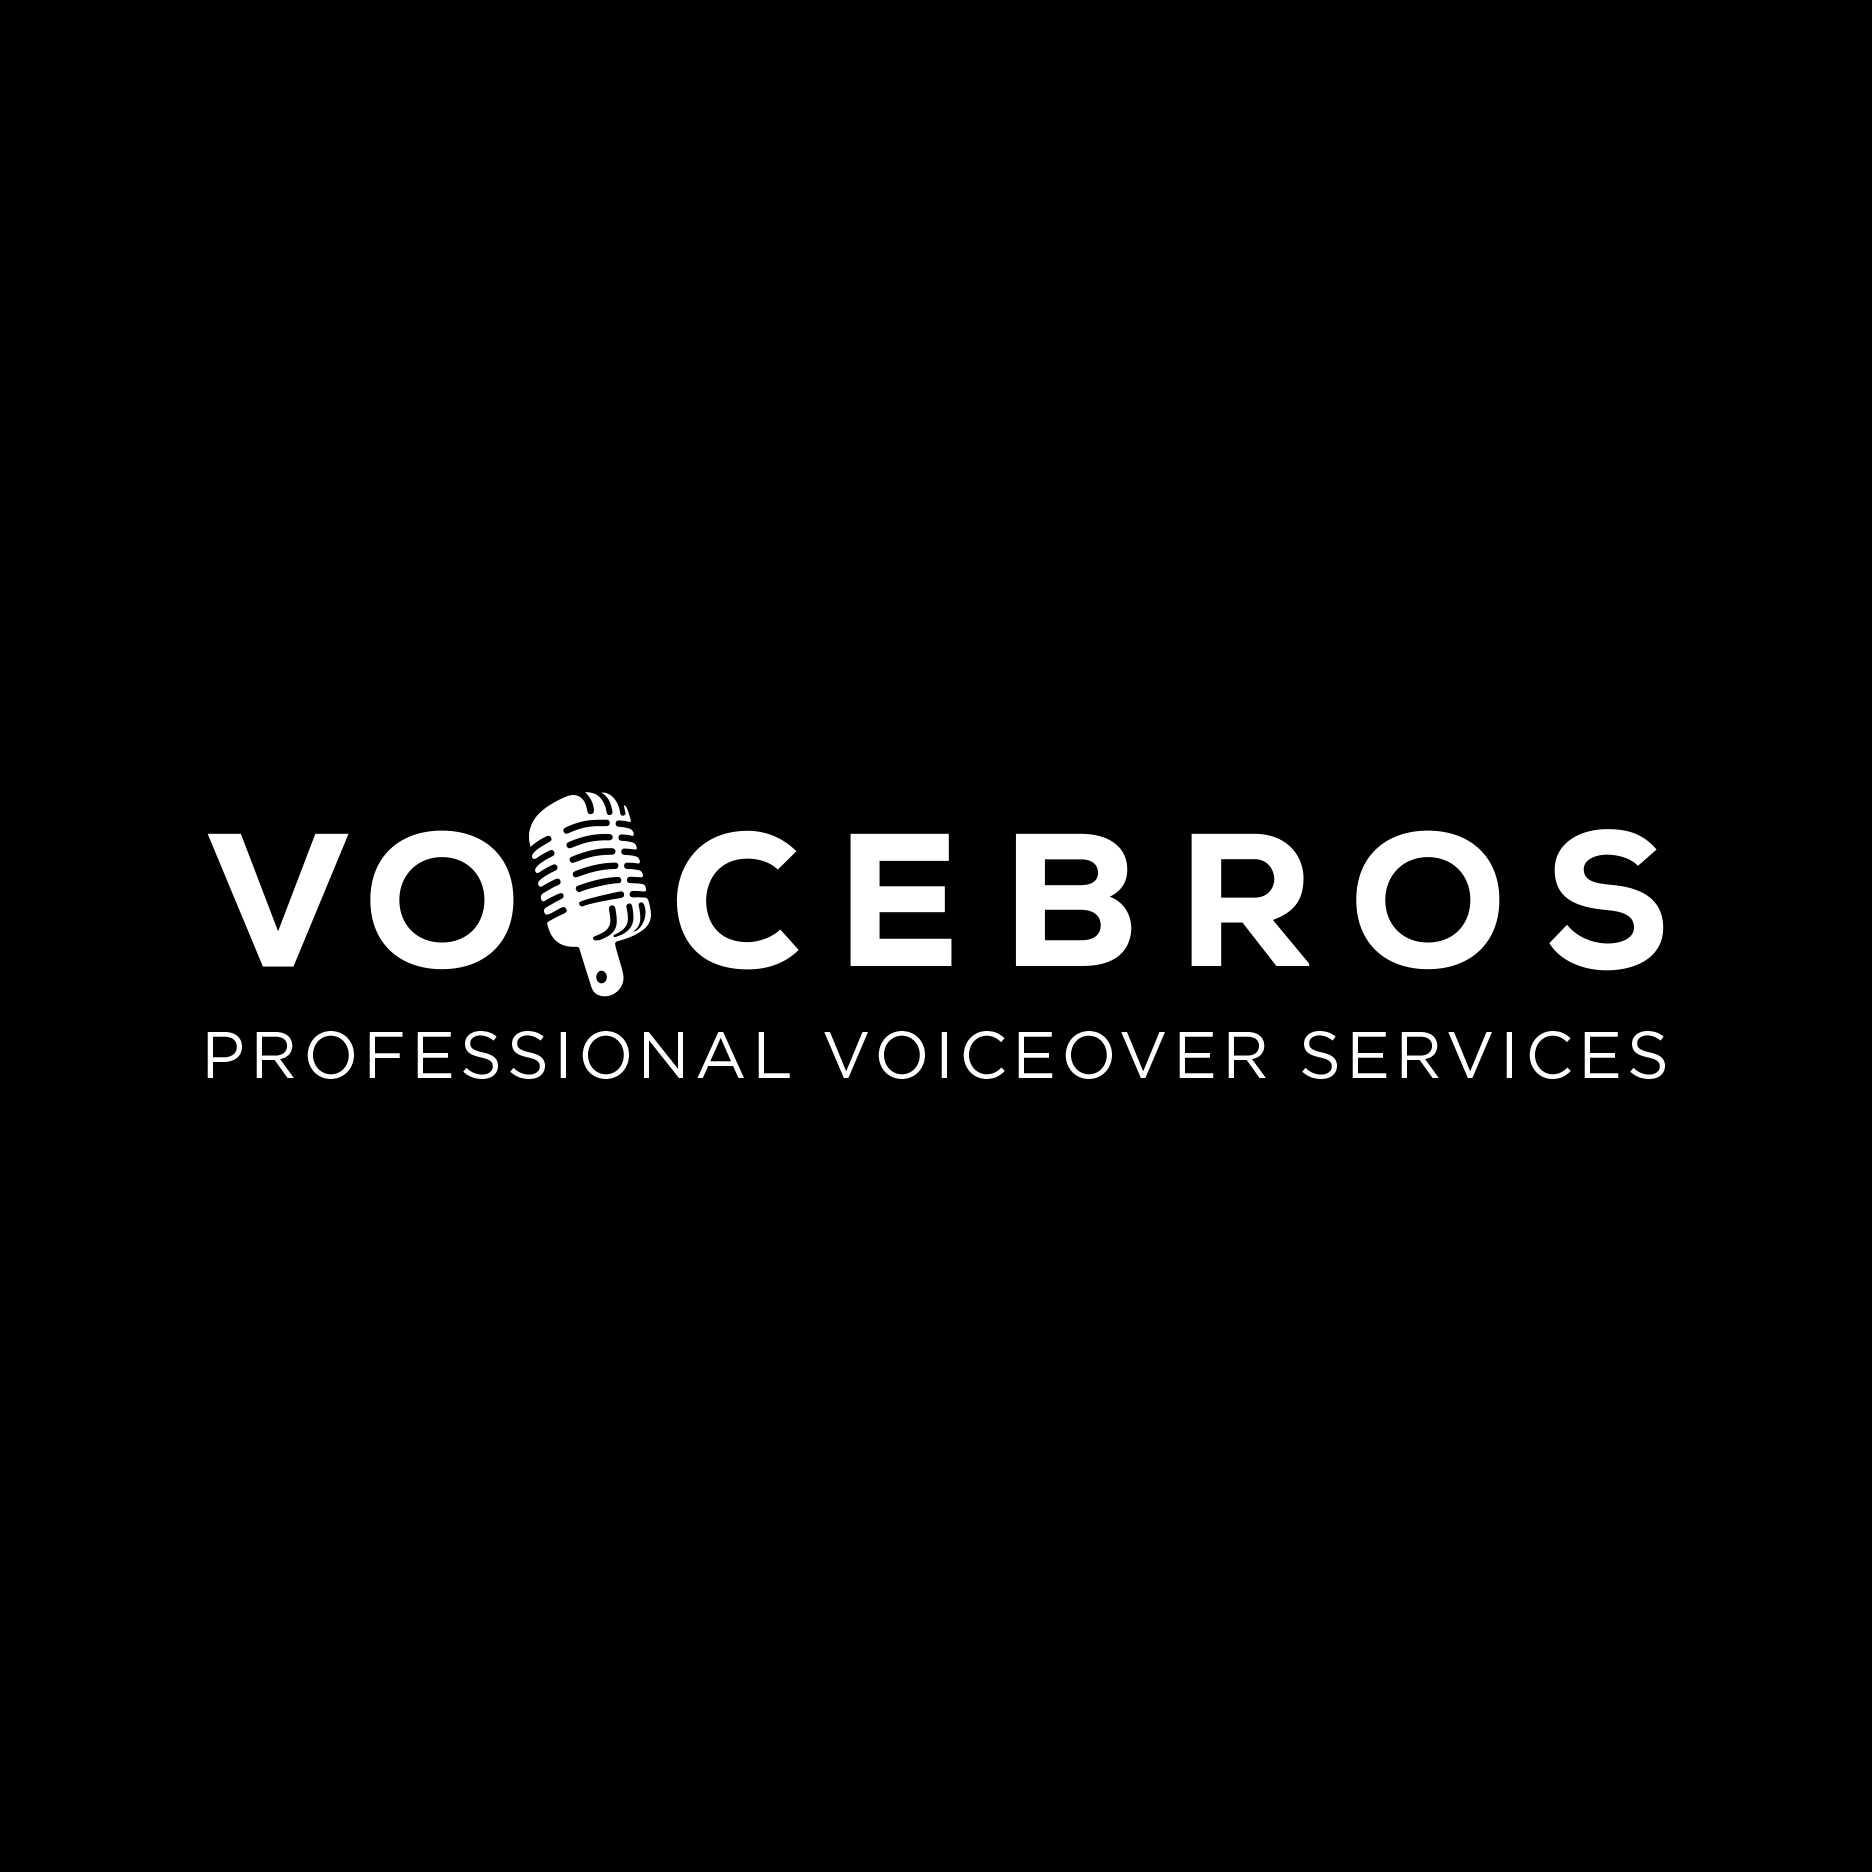 Tom Mitchell is a voice over actor